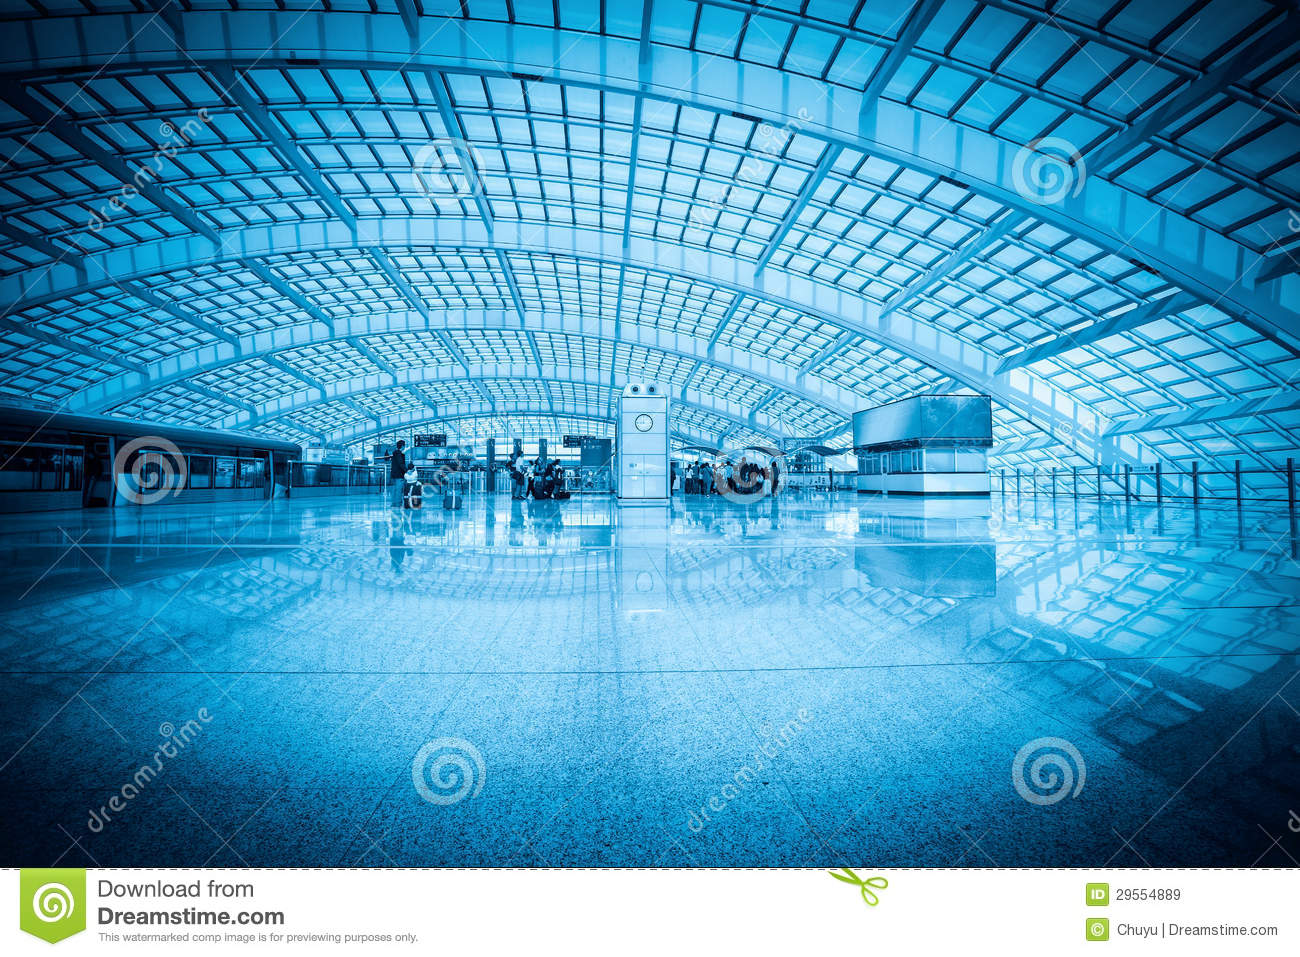 Download Modern Hall In Beijing Capital International Airport Stock Image - Image of flight, capital: 29554889